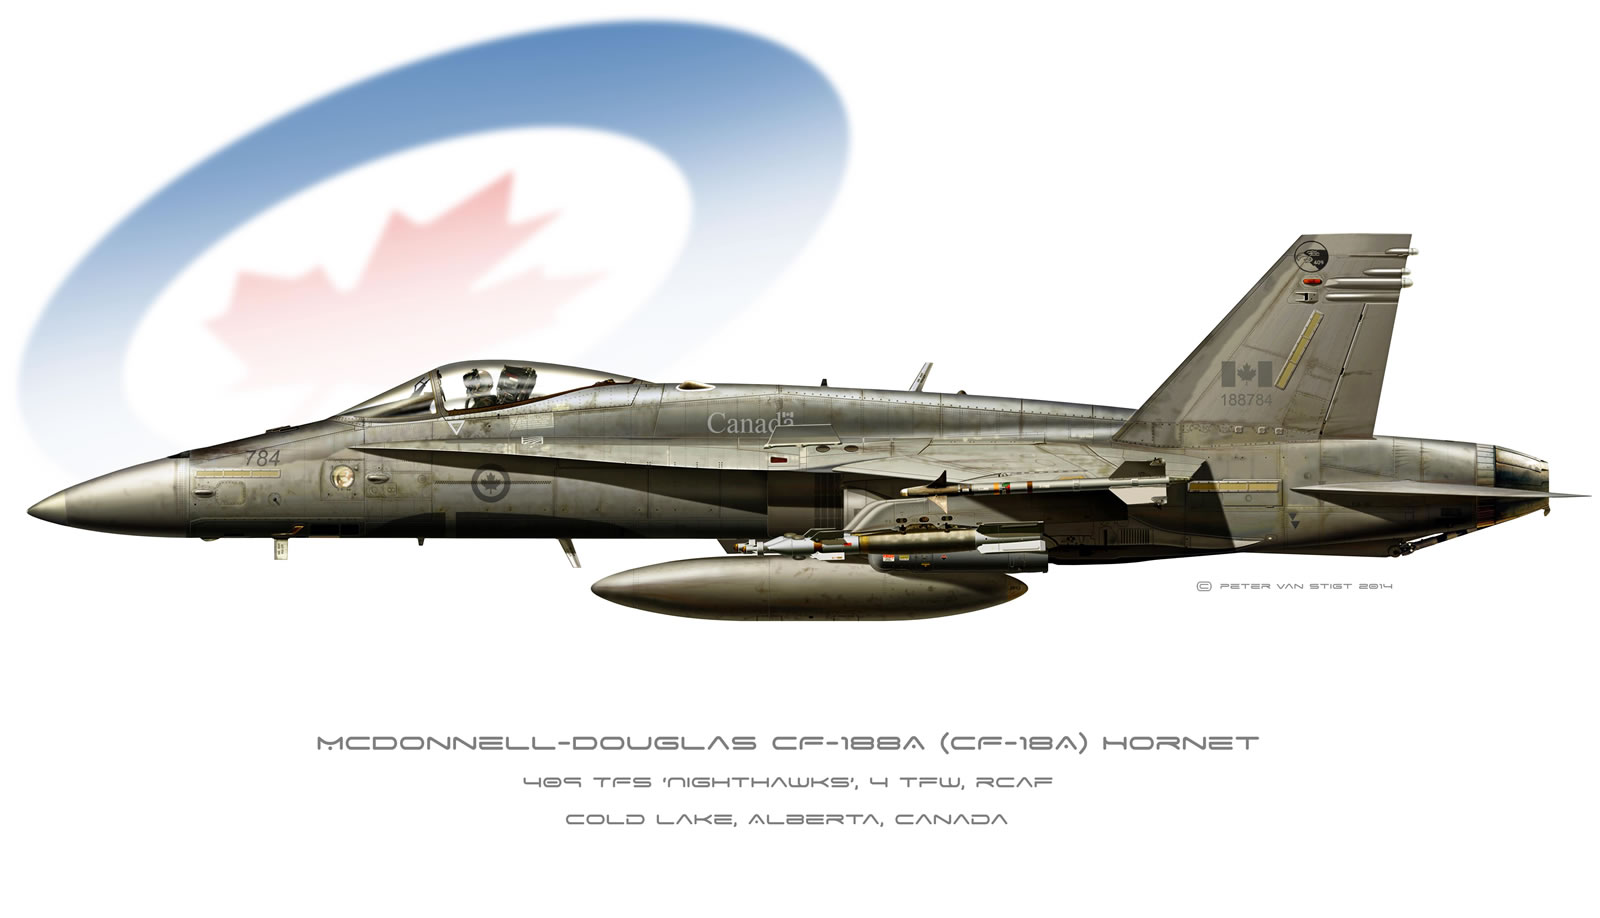 Canadian Air Force Hornet Profile